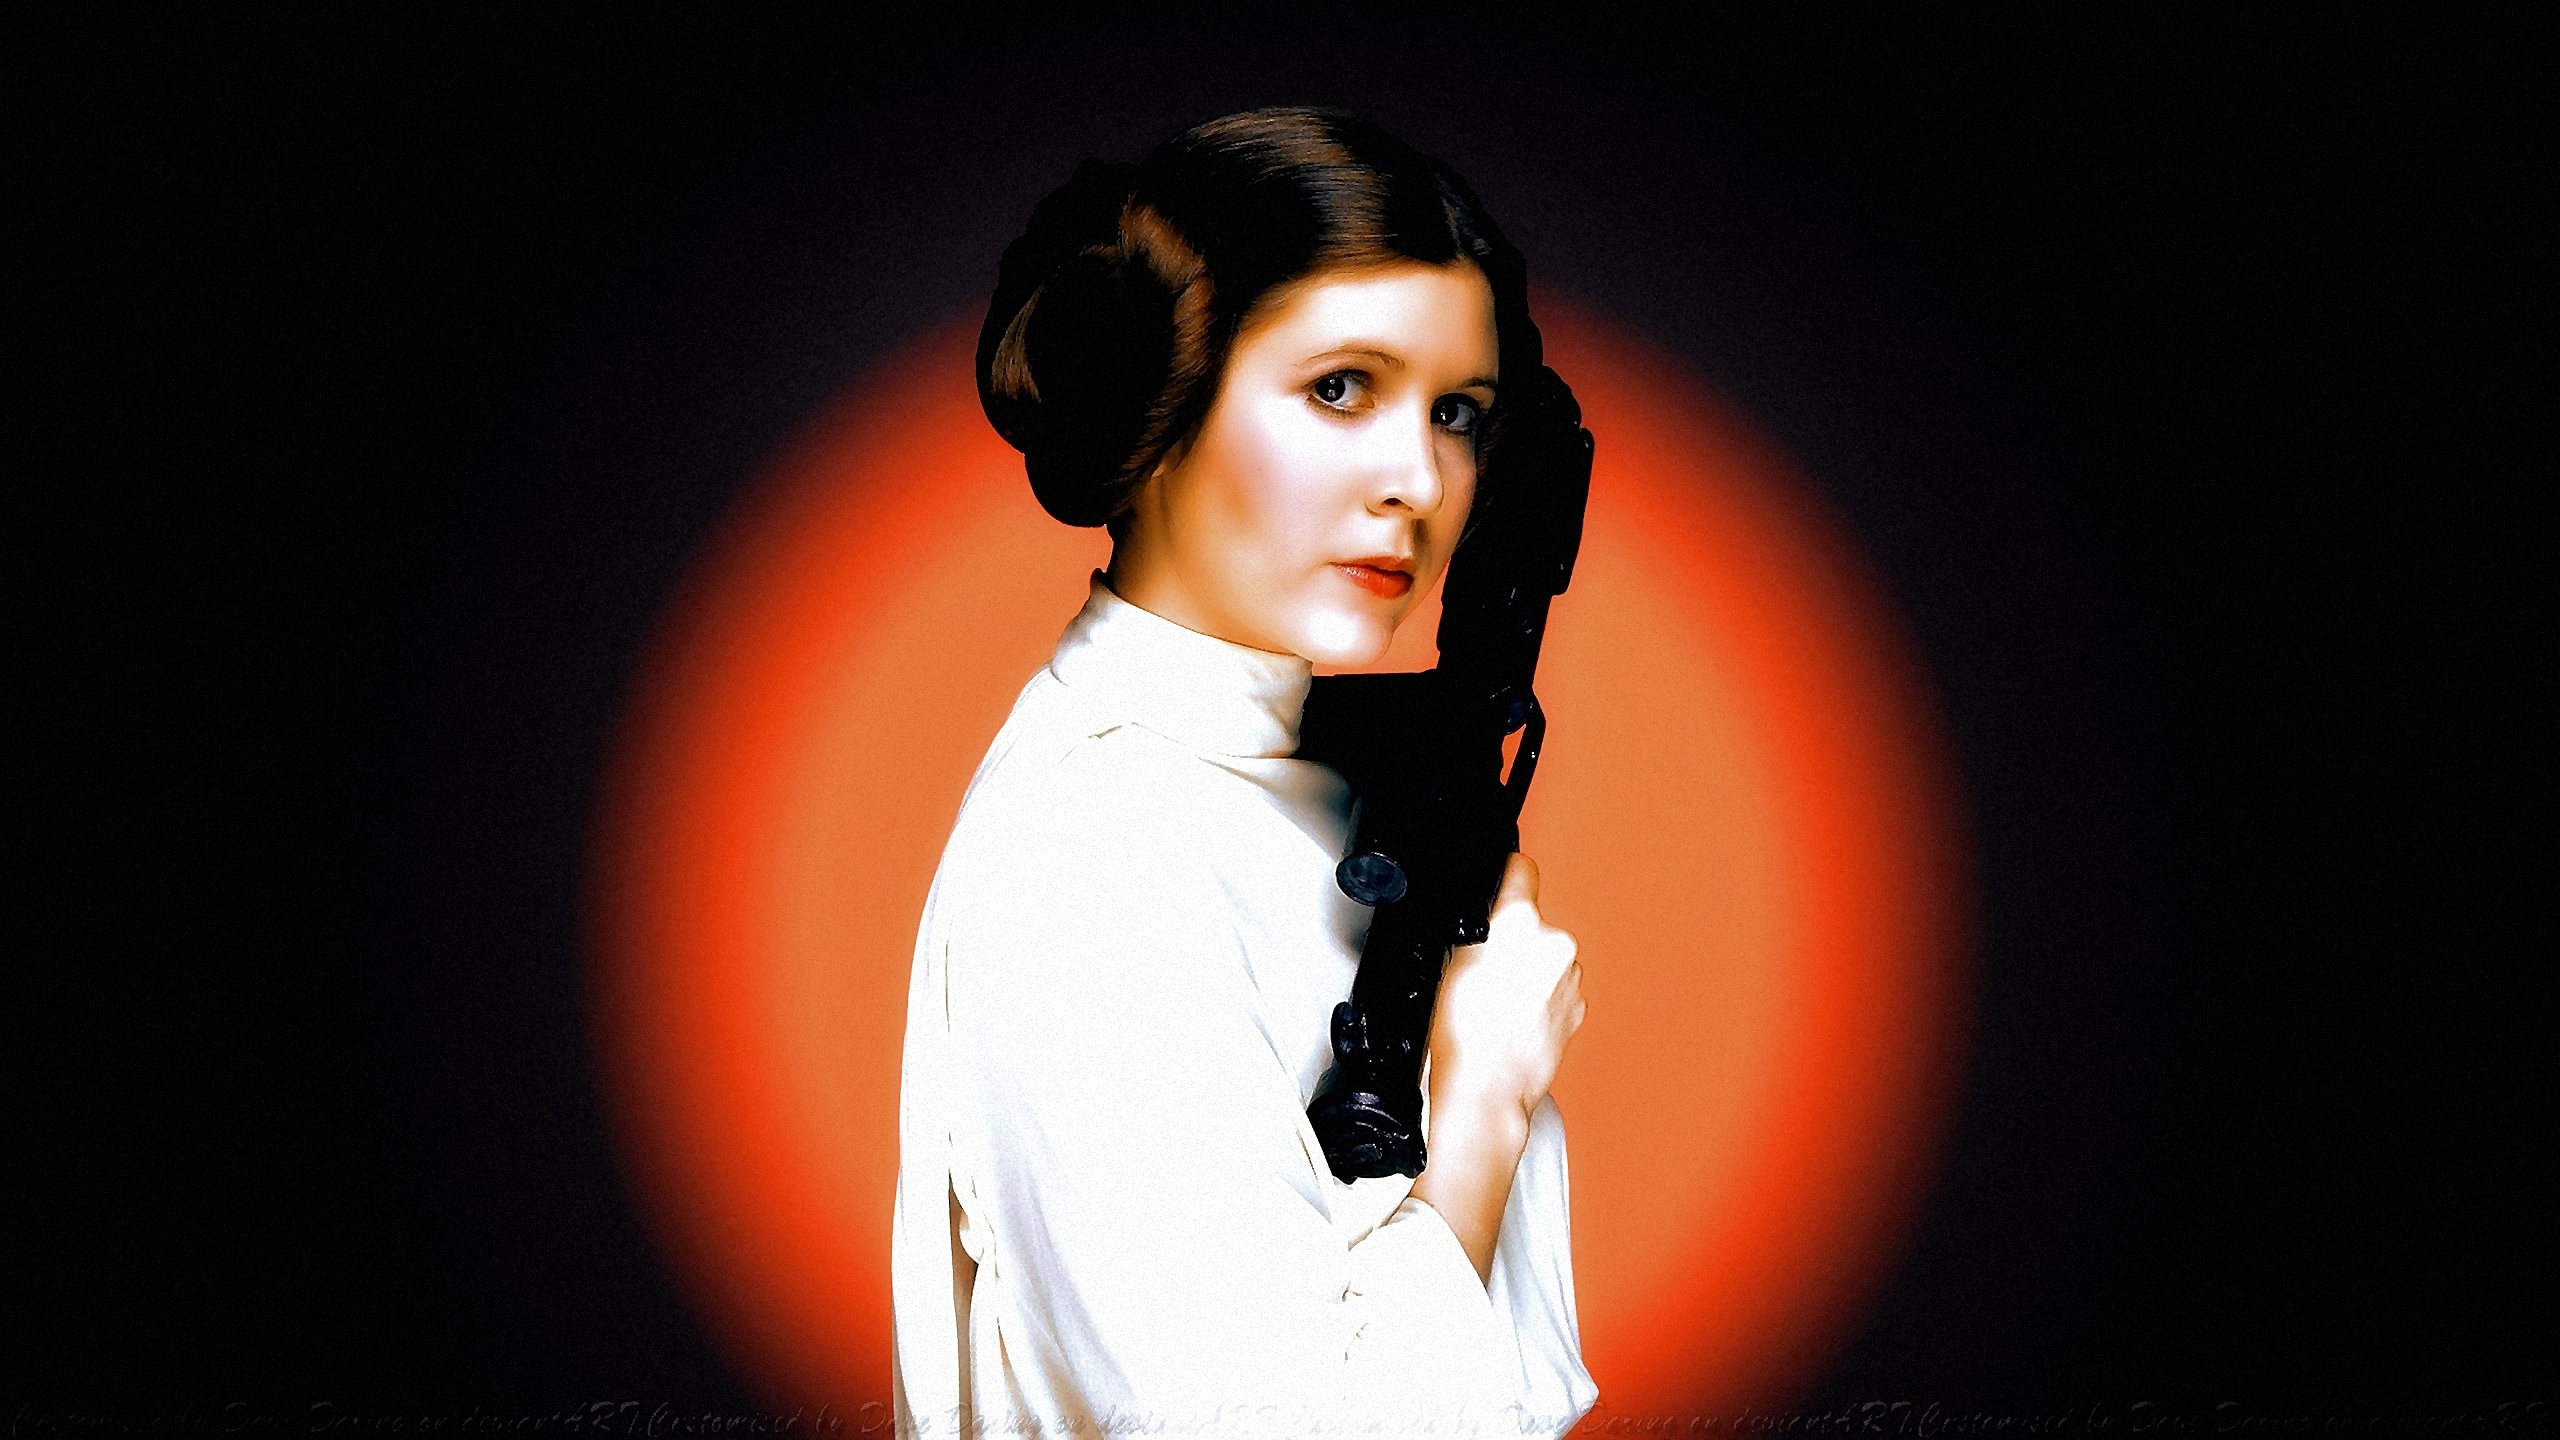 2560x1440 - Carrie Fisher Wallpapers 17